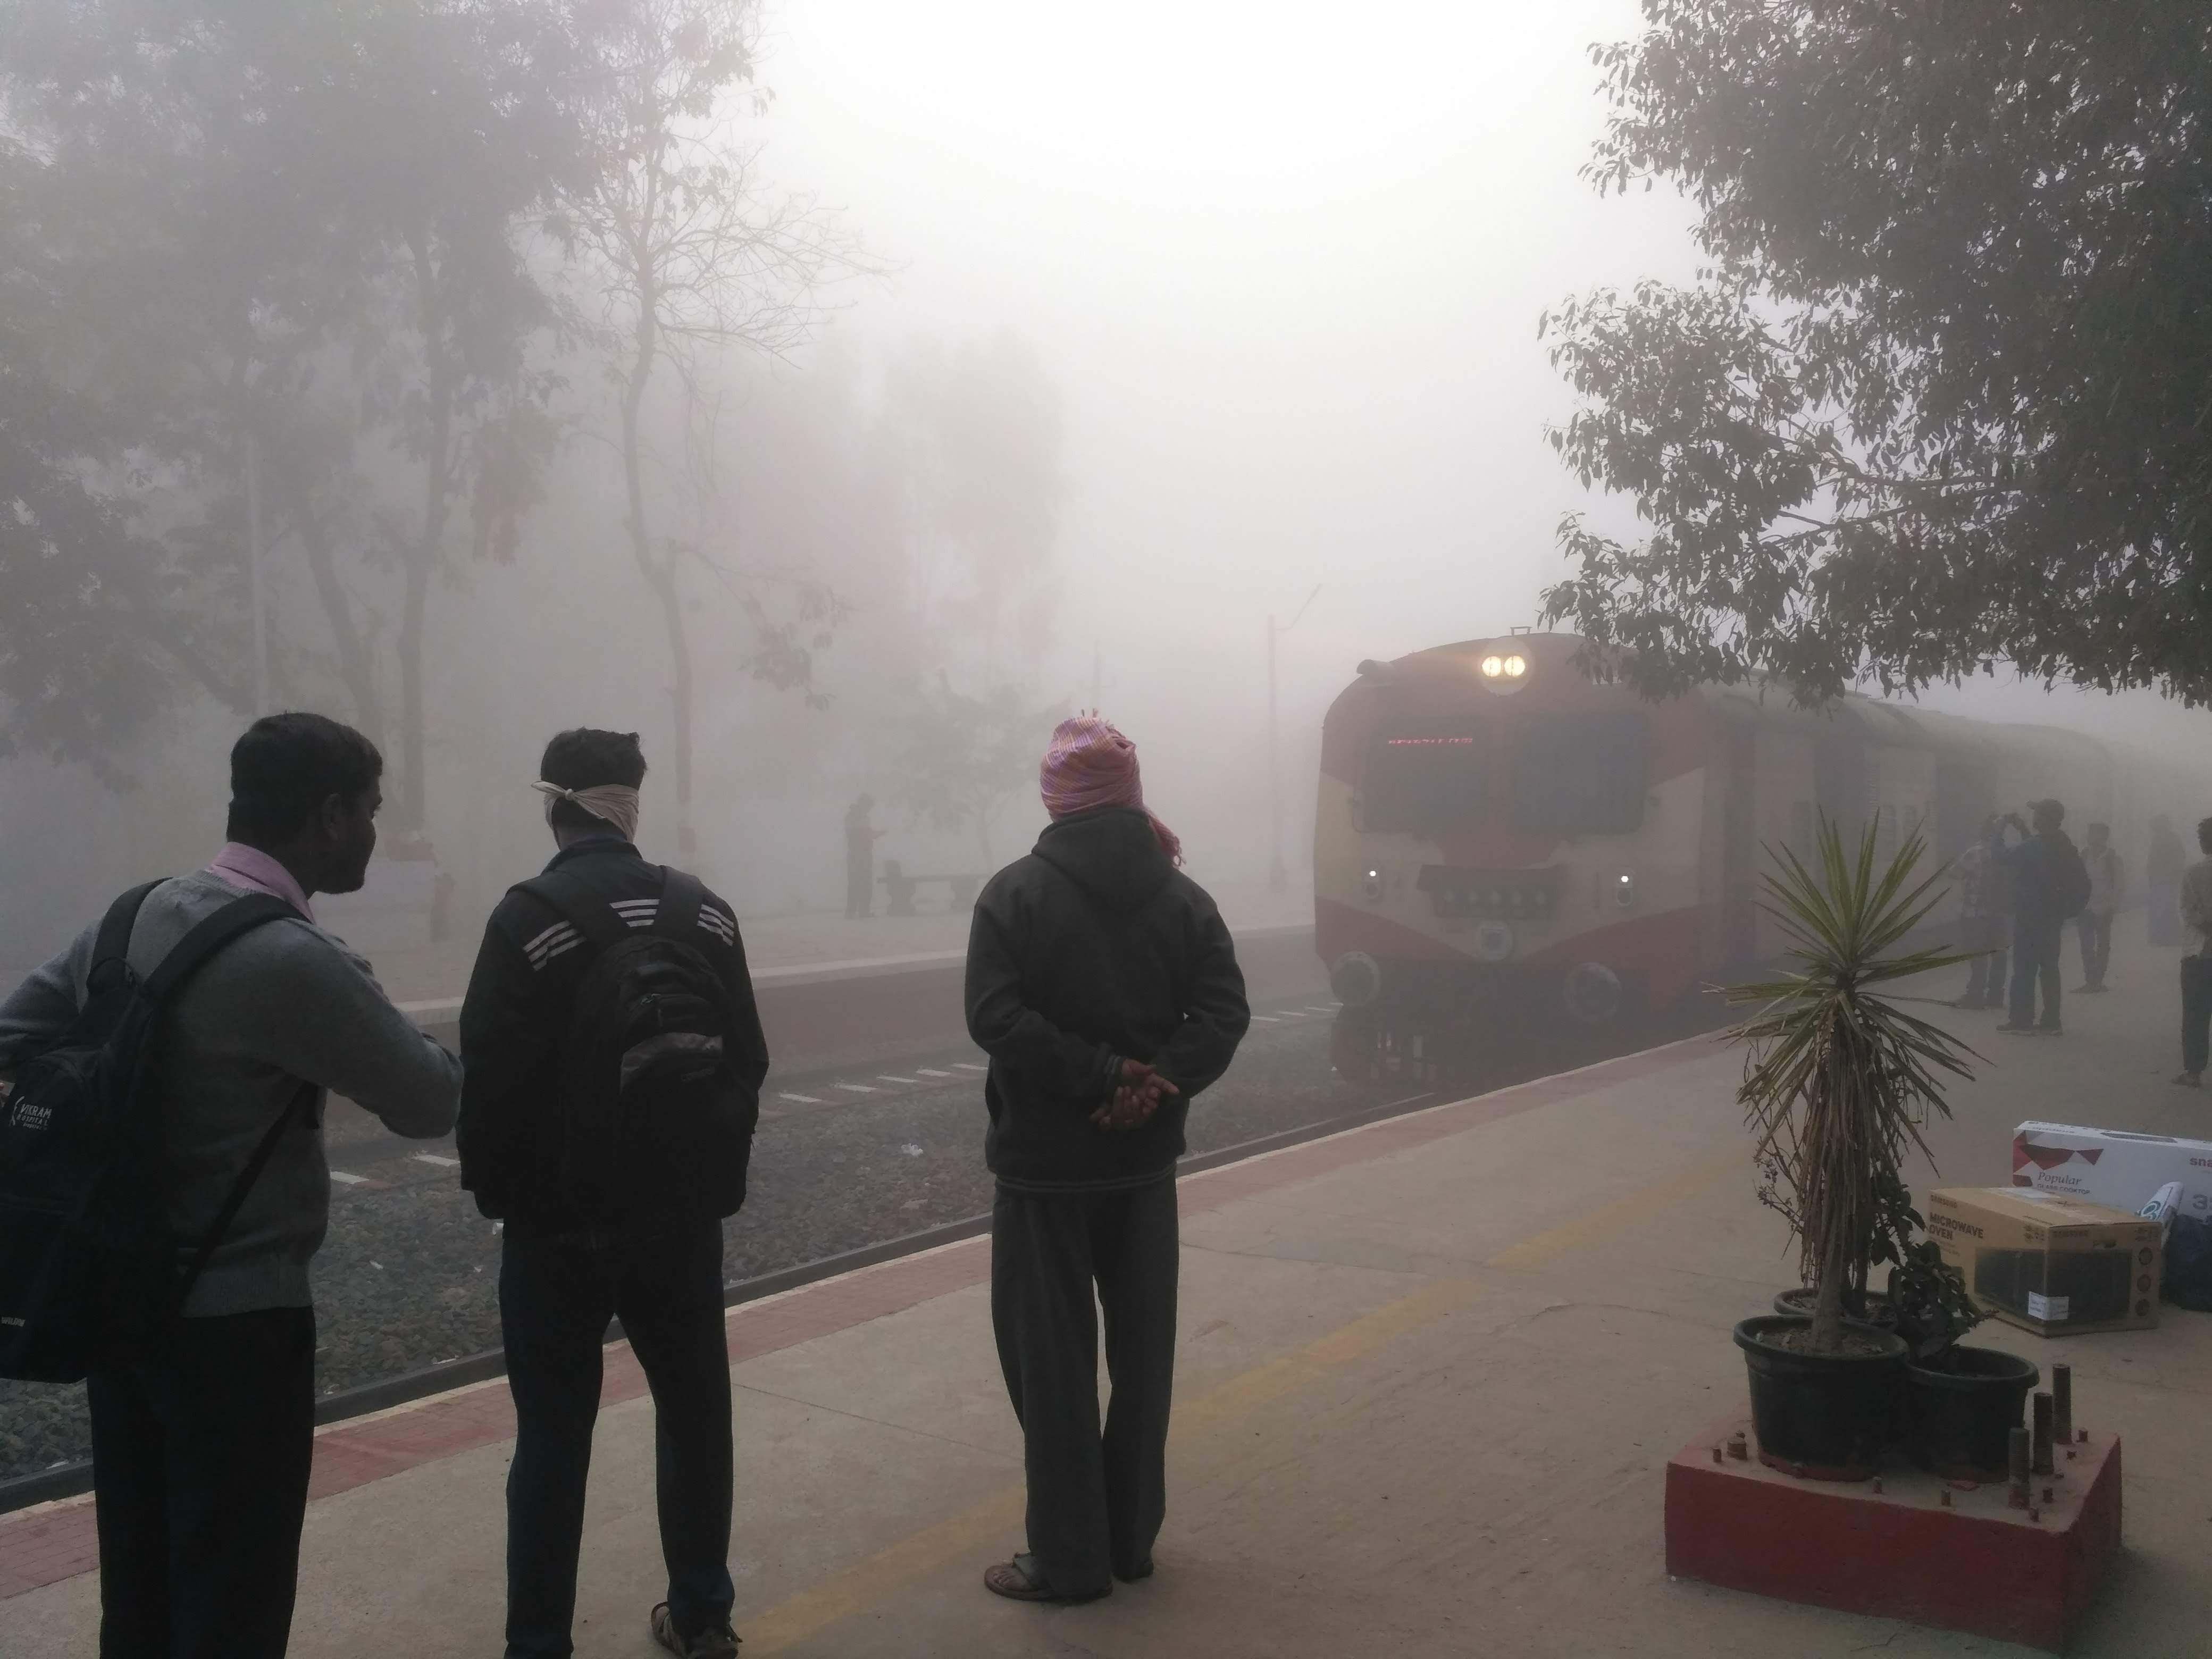 Winter morning and chai at an Indian railway station